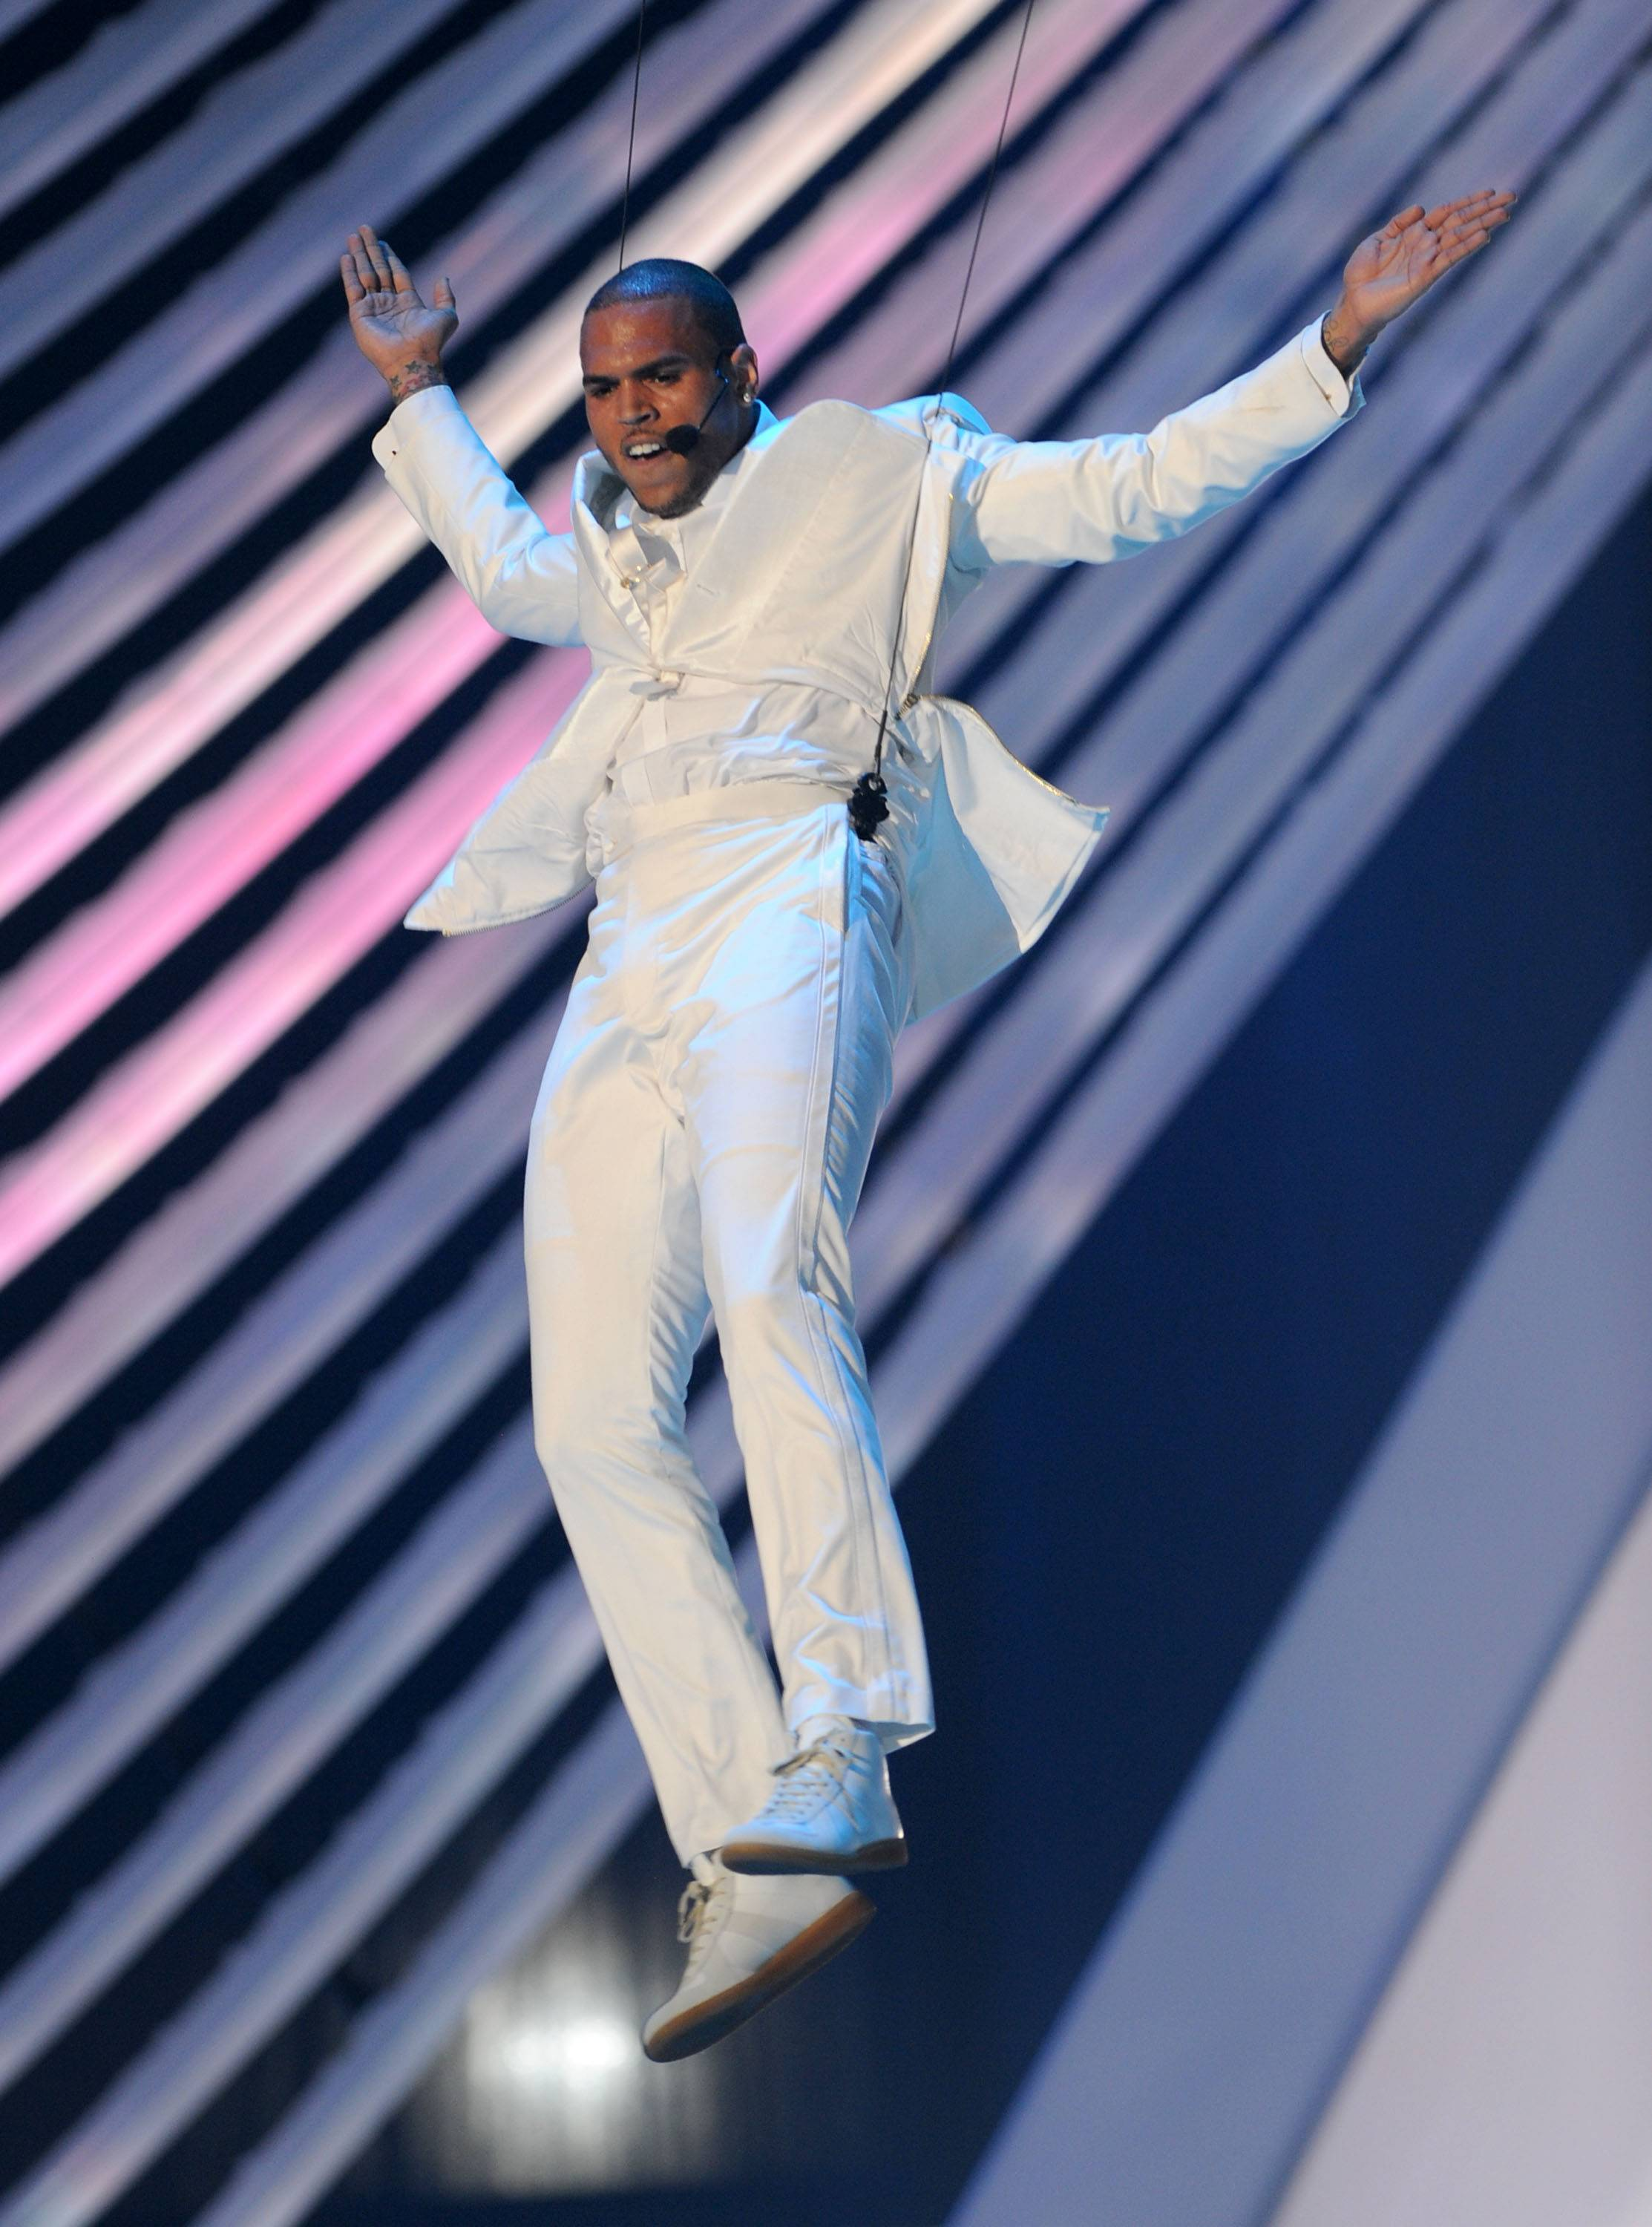 """2011 MTV Video Music Awards - A year after Breezy literally embodied MJ at the BET Awards, he put on another killer performance at the 2011 MTV Music Video Awards. Brown kept the crowd fully entertained with a Cirque Du Soleilinspired performance,featuring high-flying table jumping and impeccable choreography. He danced to a medley of hits including hits from Wu-Tang Clan, Nirvana and his own songs """"Yeah 3X"""" and """"Beautiful People."""" (Photo: Kevin Winter/Getty Images)"""